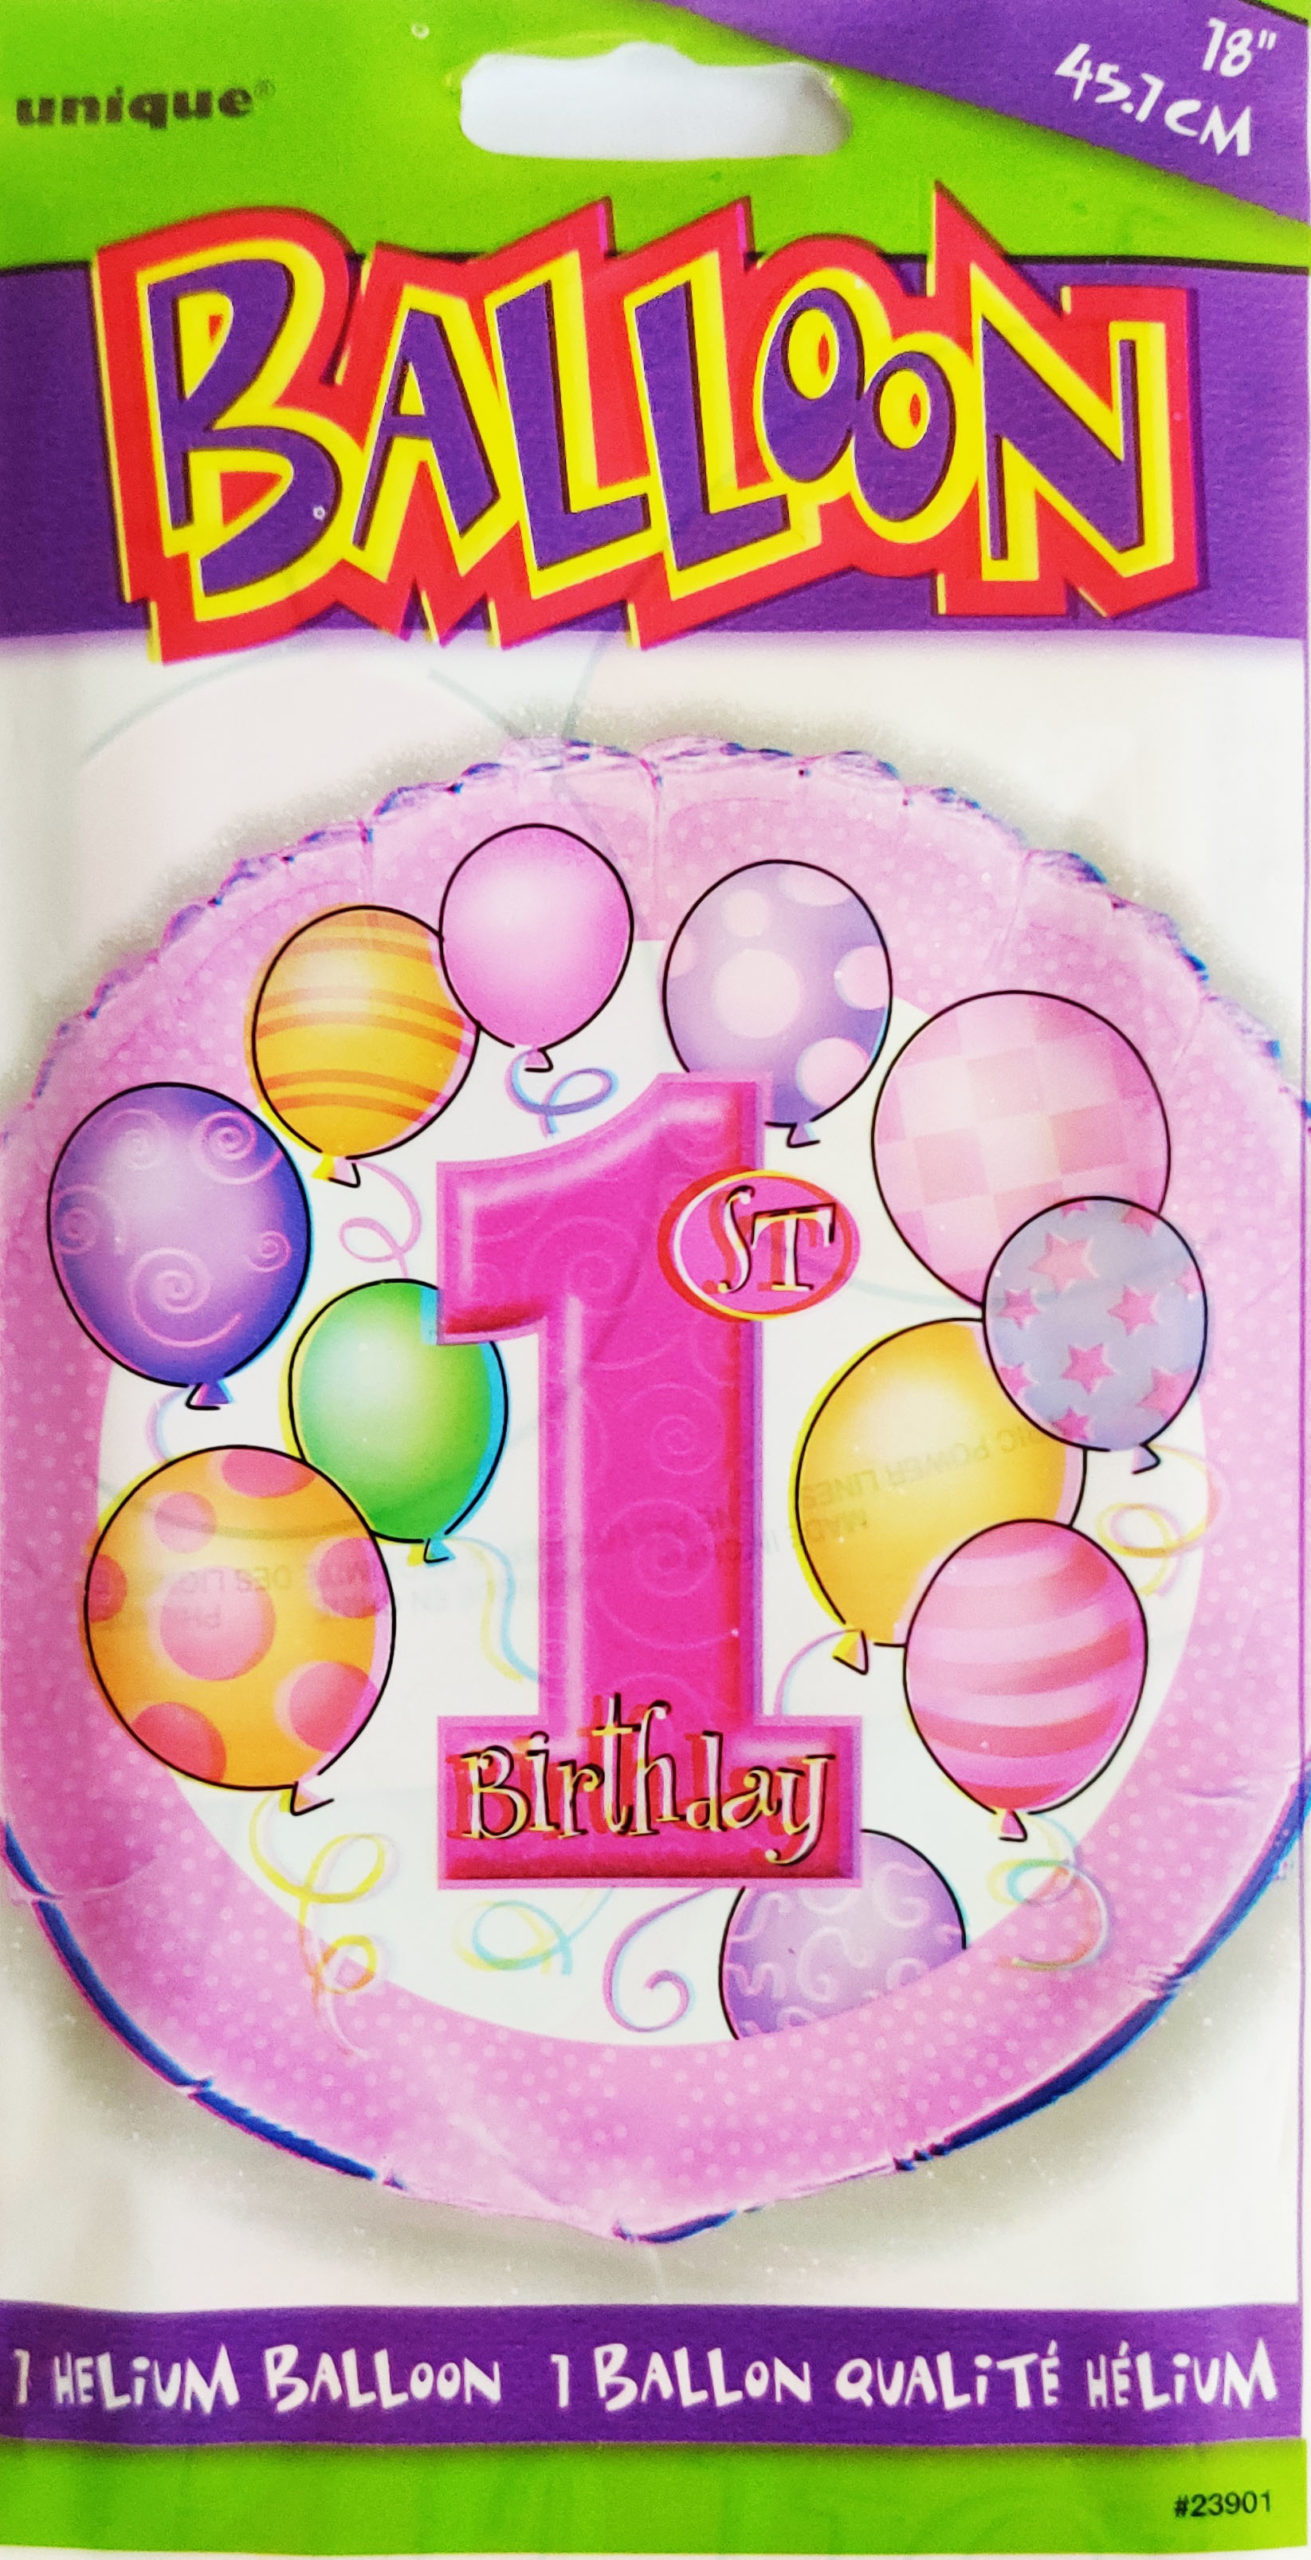 1st Birthday 18inch Foil Balloon Multi coloured 23901